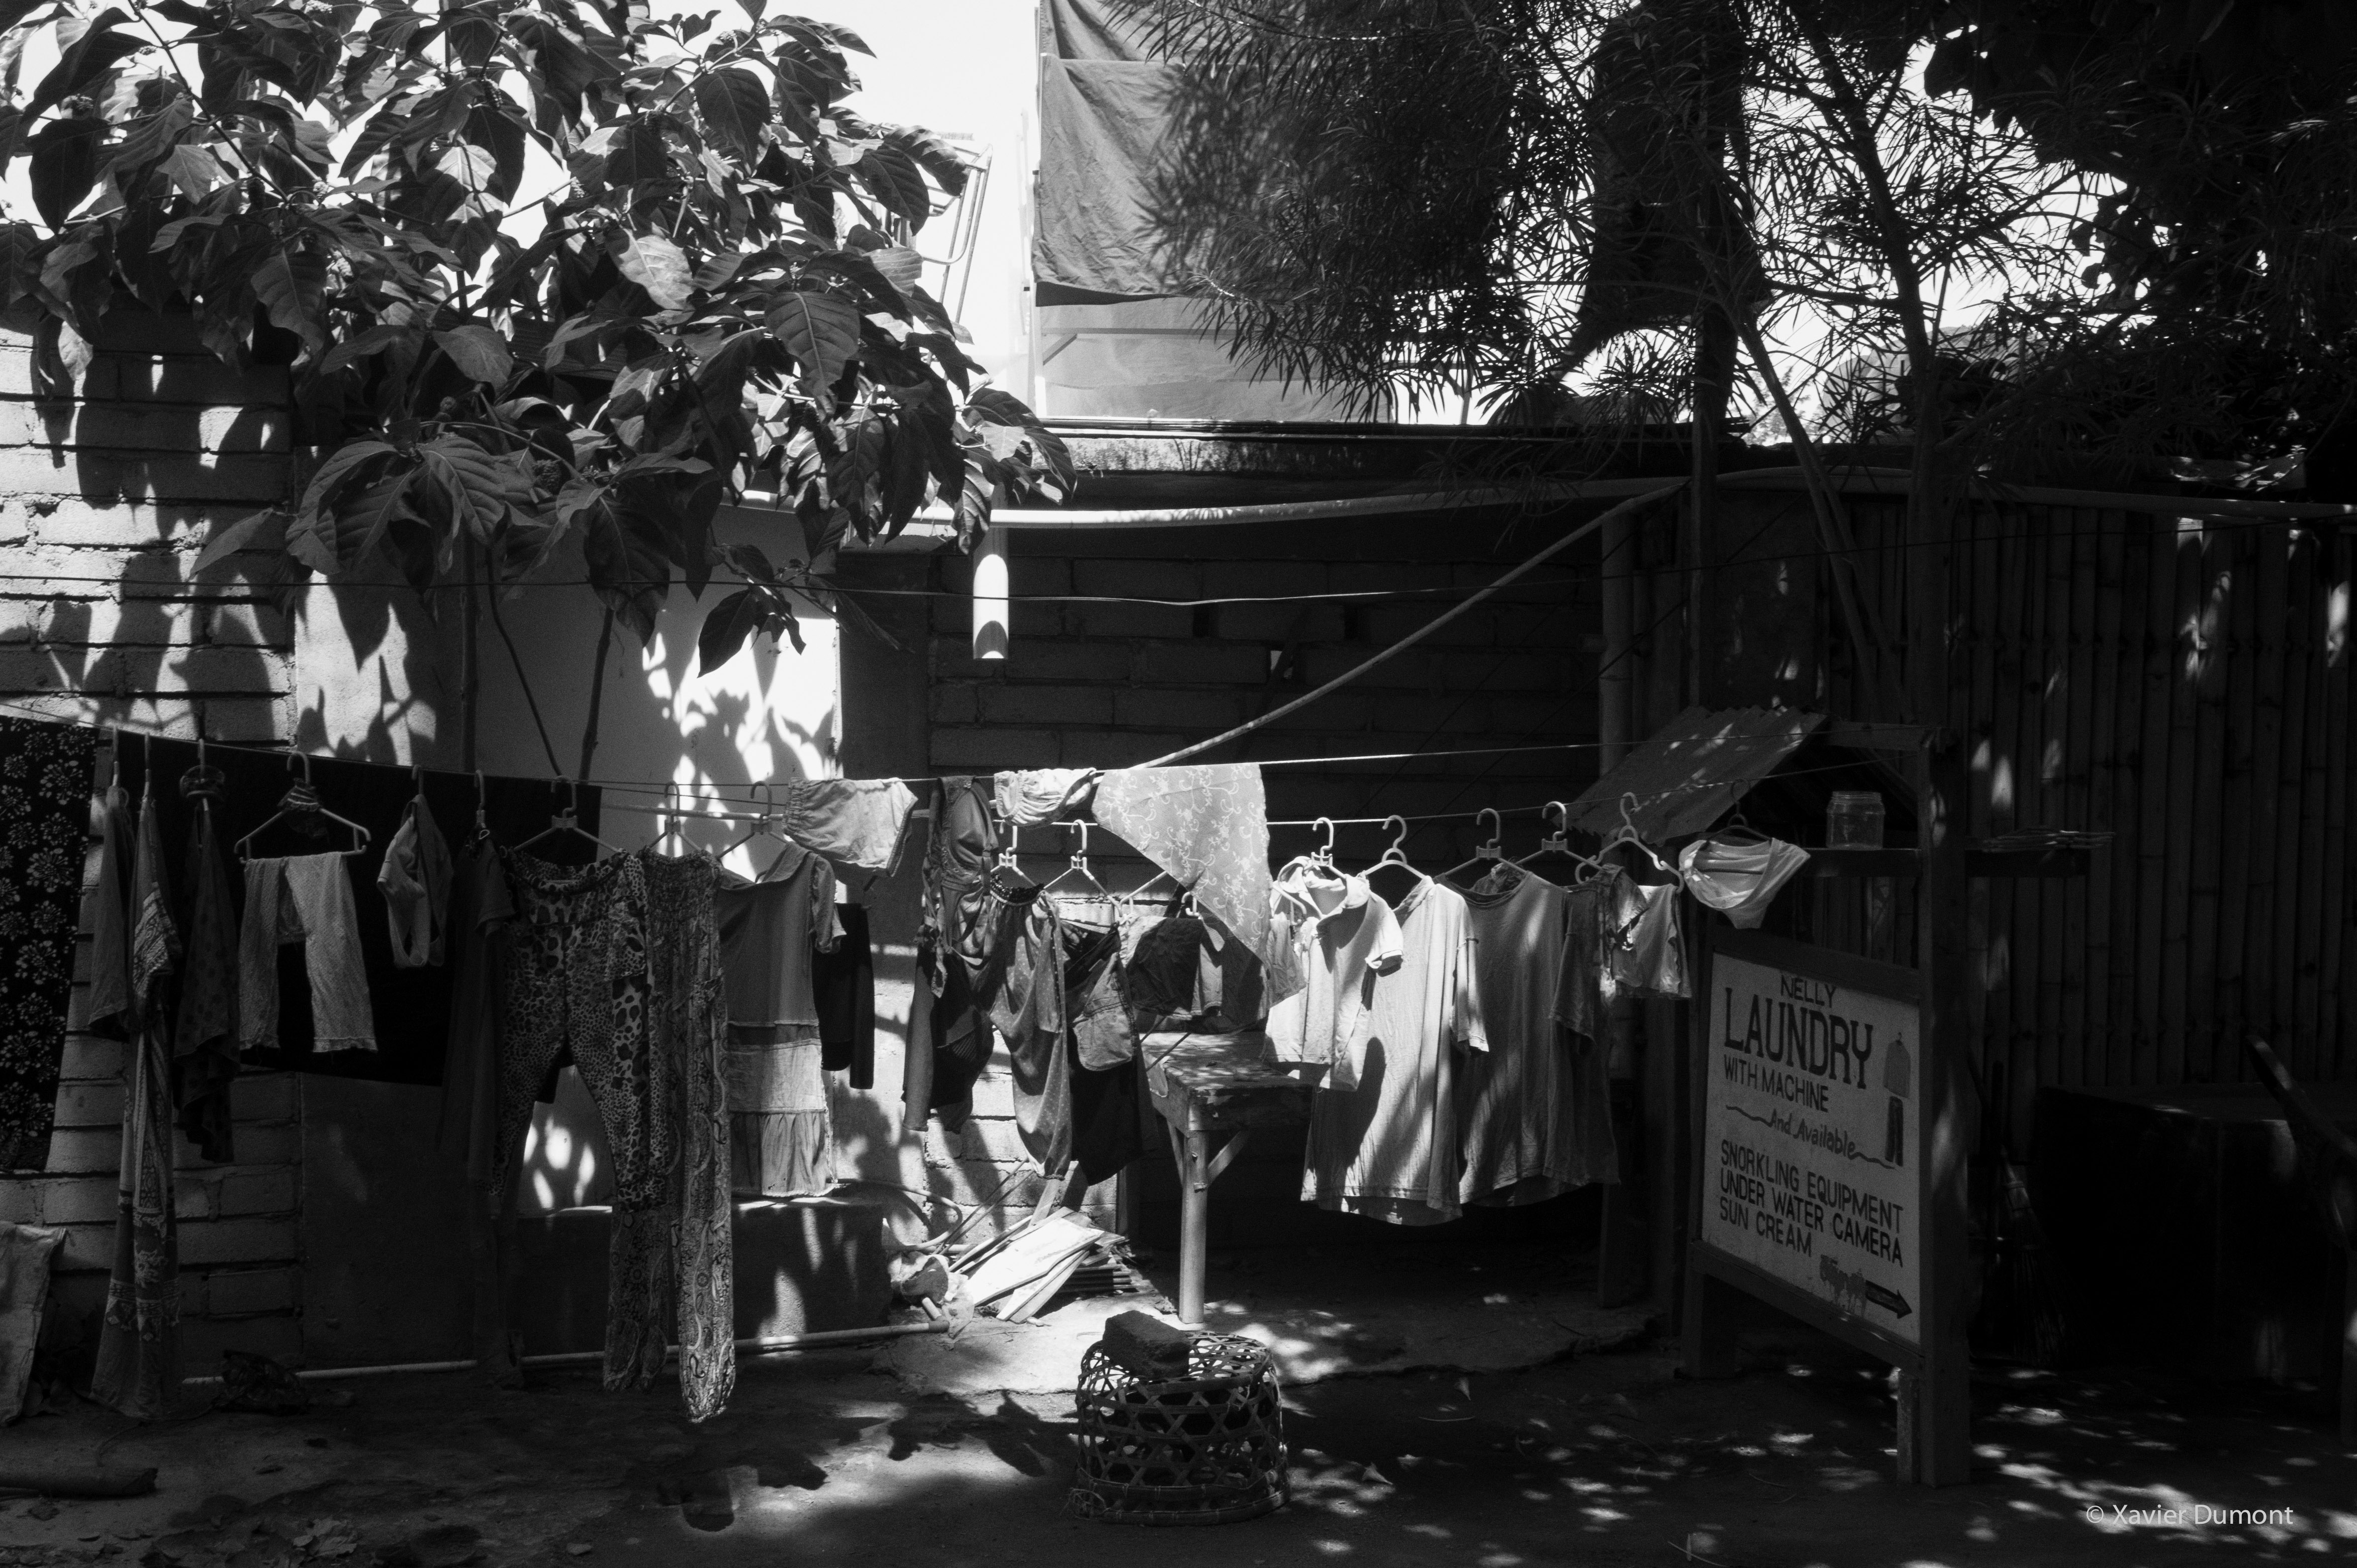 Nelly's Laundry, 2014, Gili